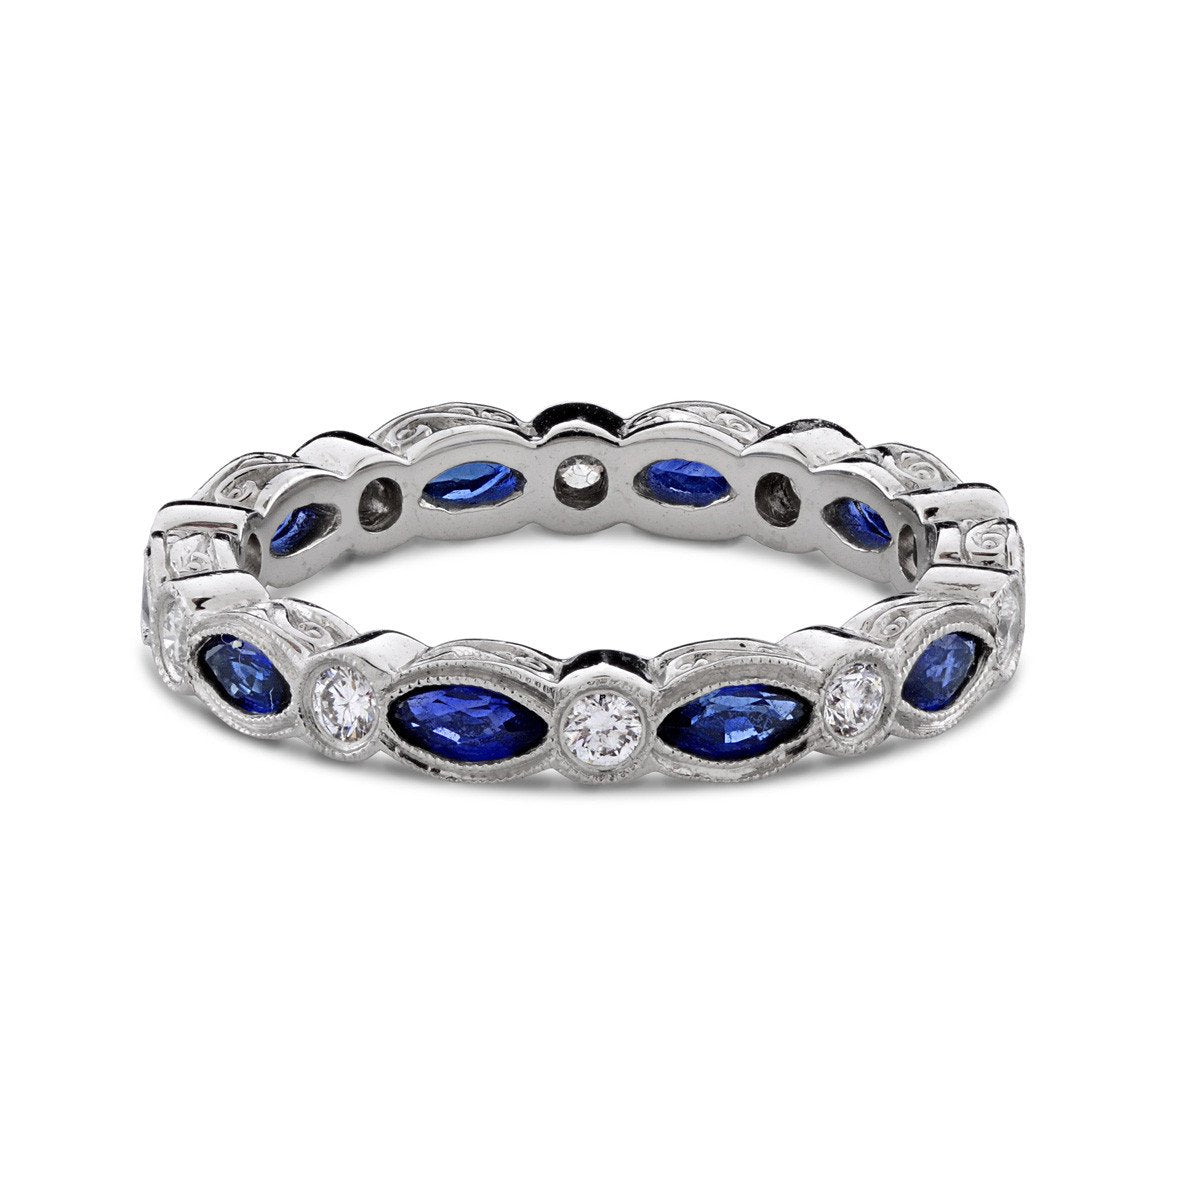 eternity band princess her blue channel for set carat sapphire yg with ct yellow in jewelry nl diamond gold